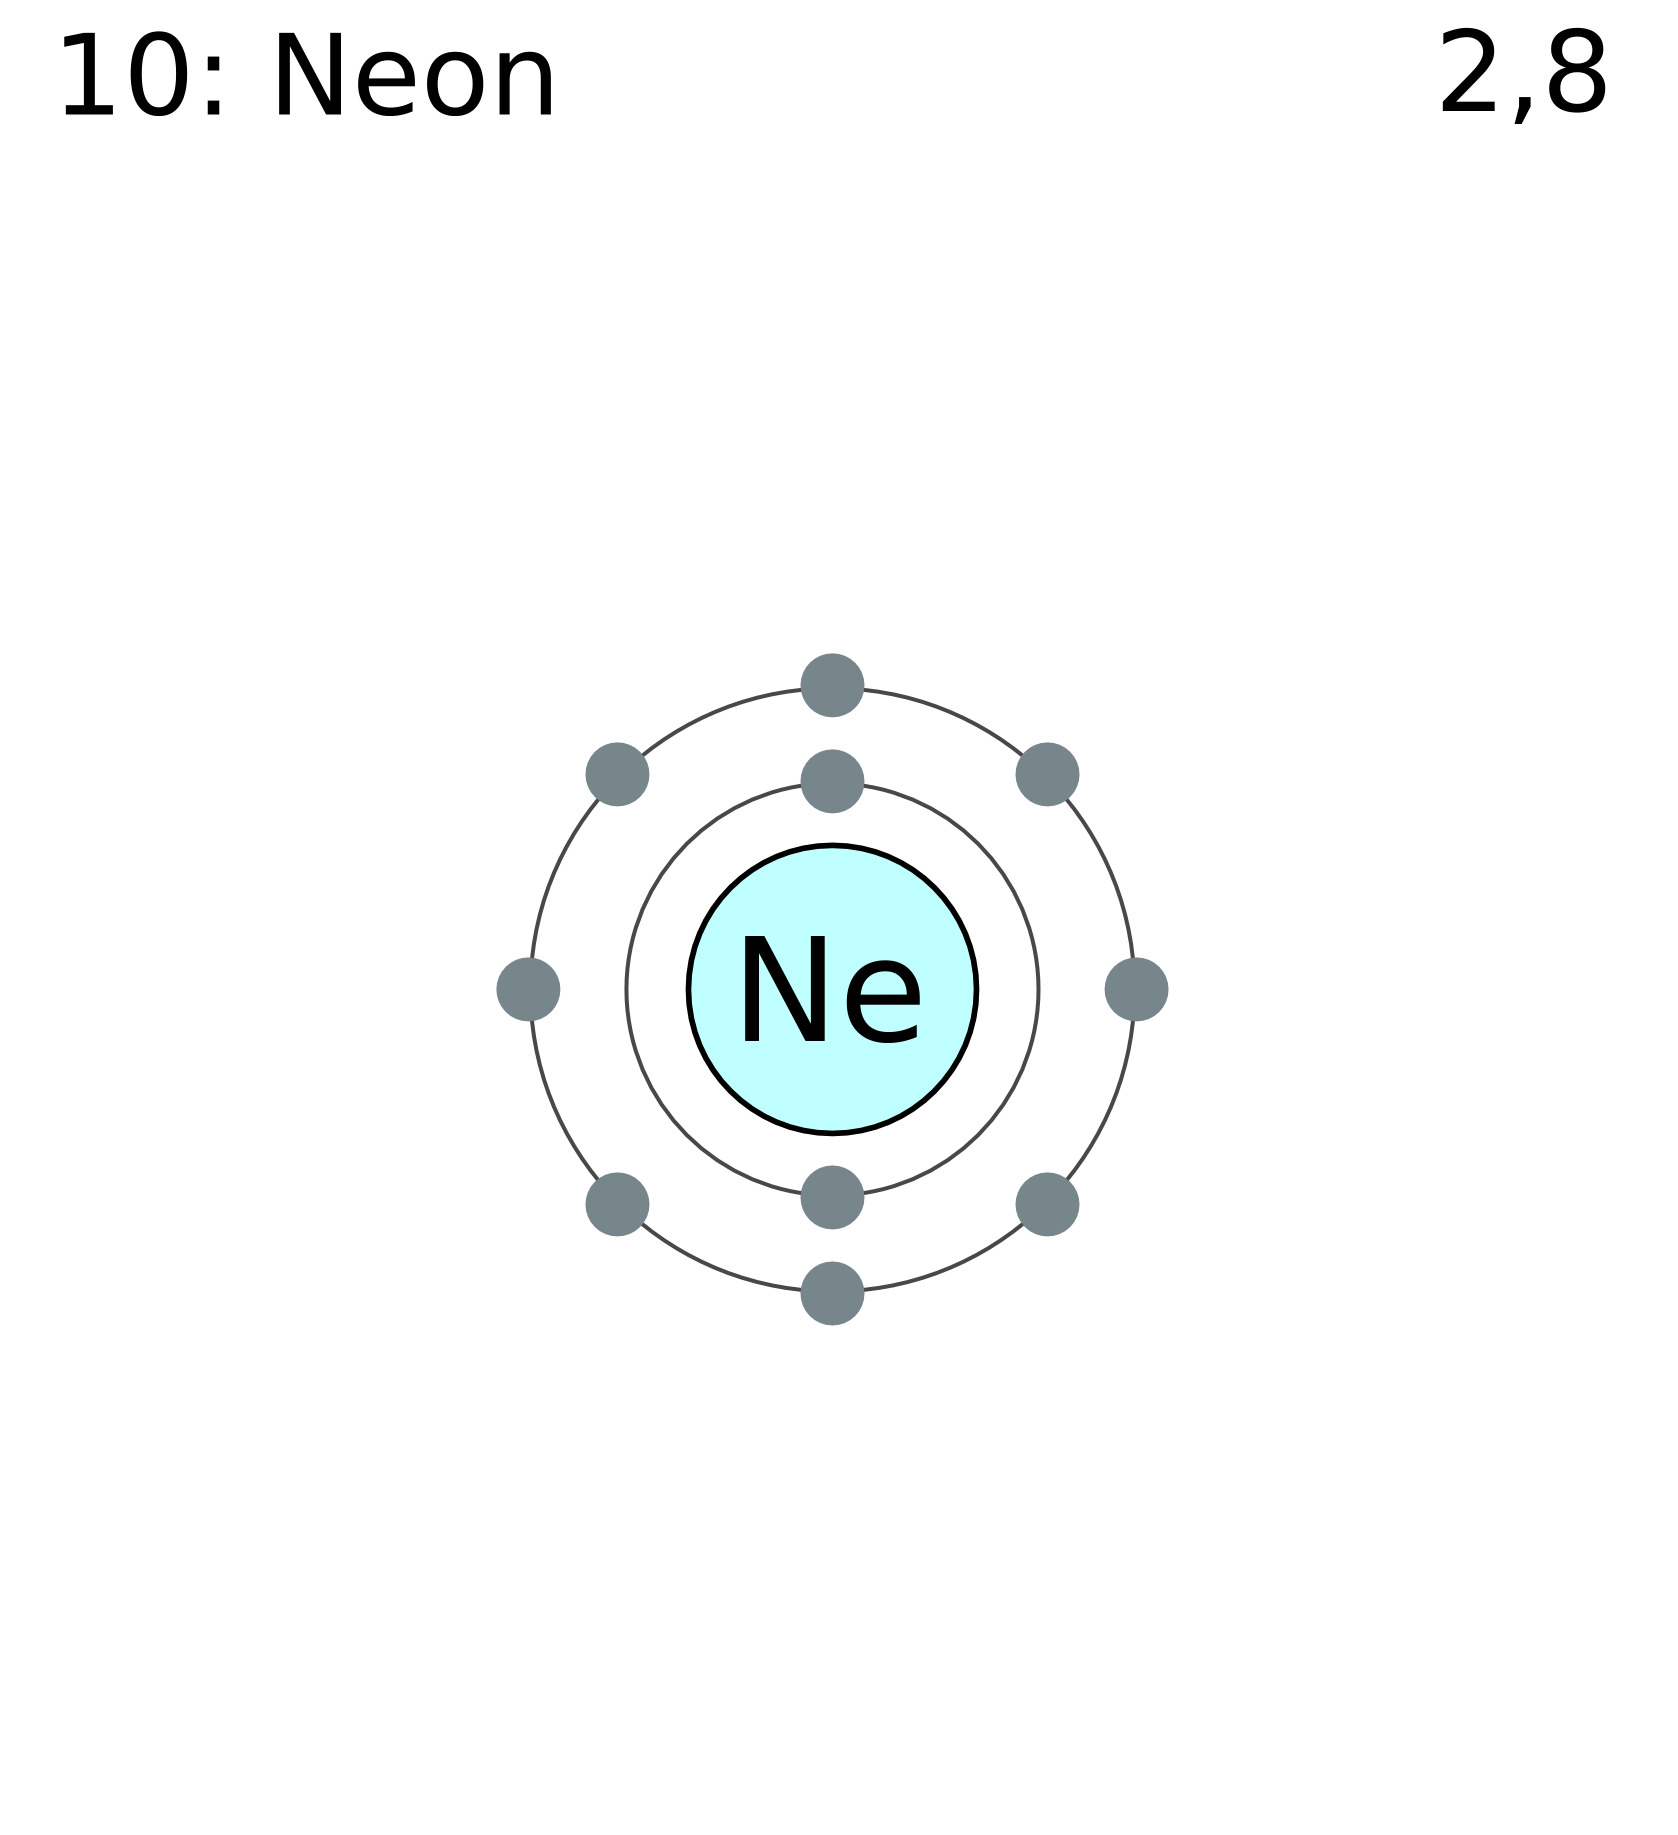 File:Electron shell 010 neon.png